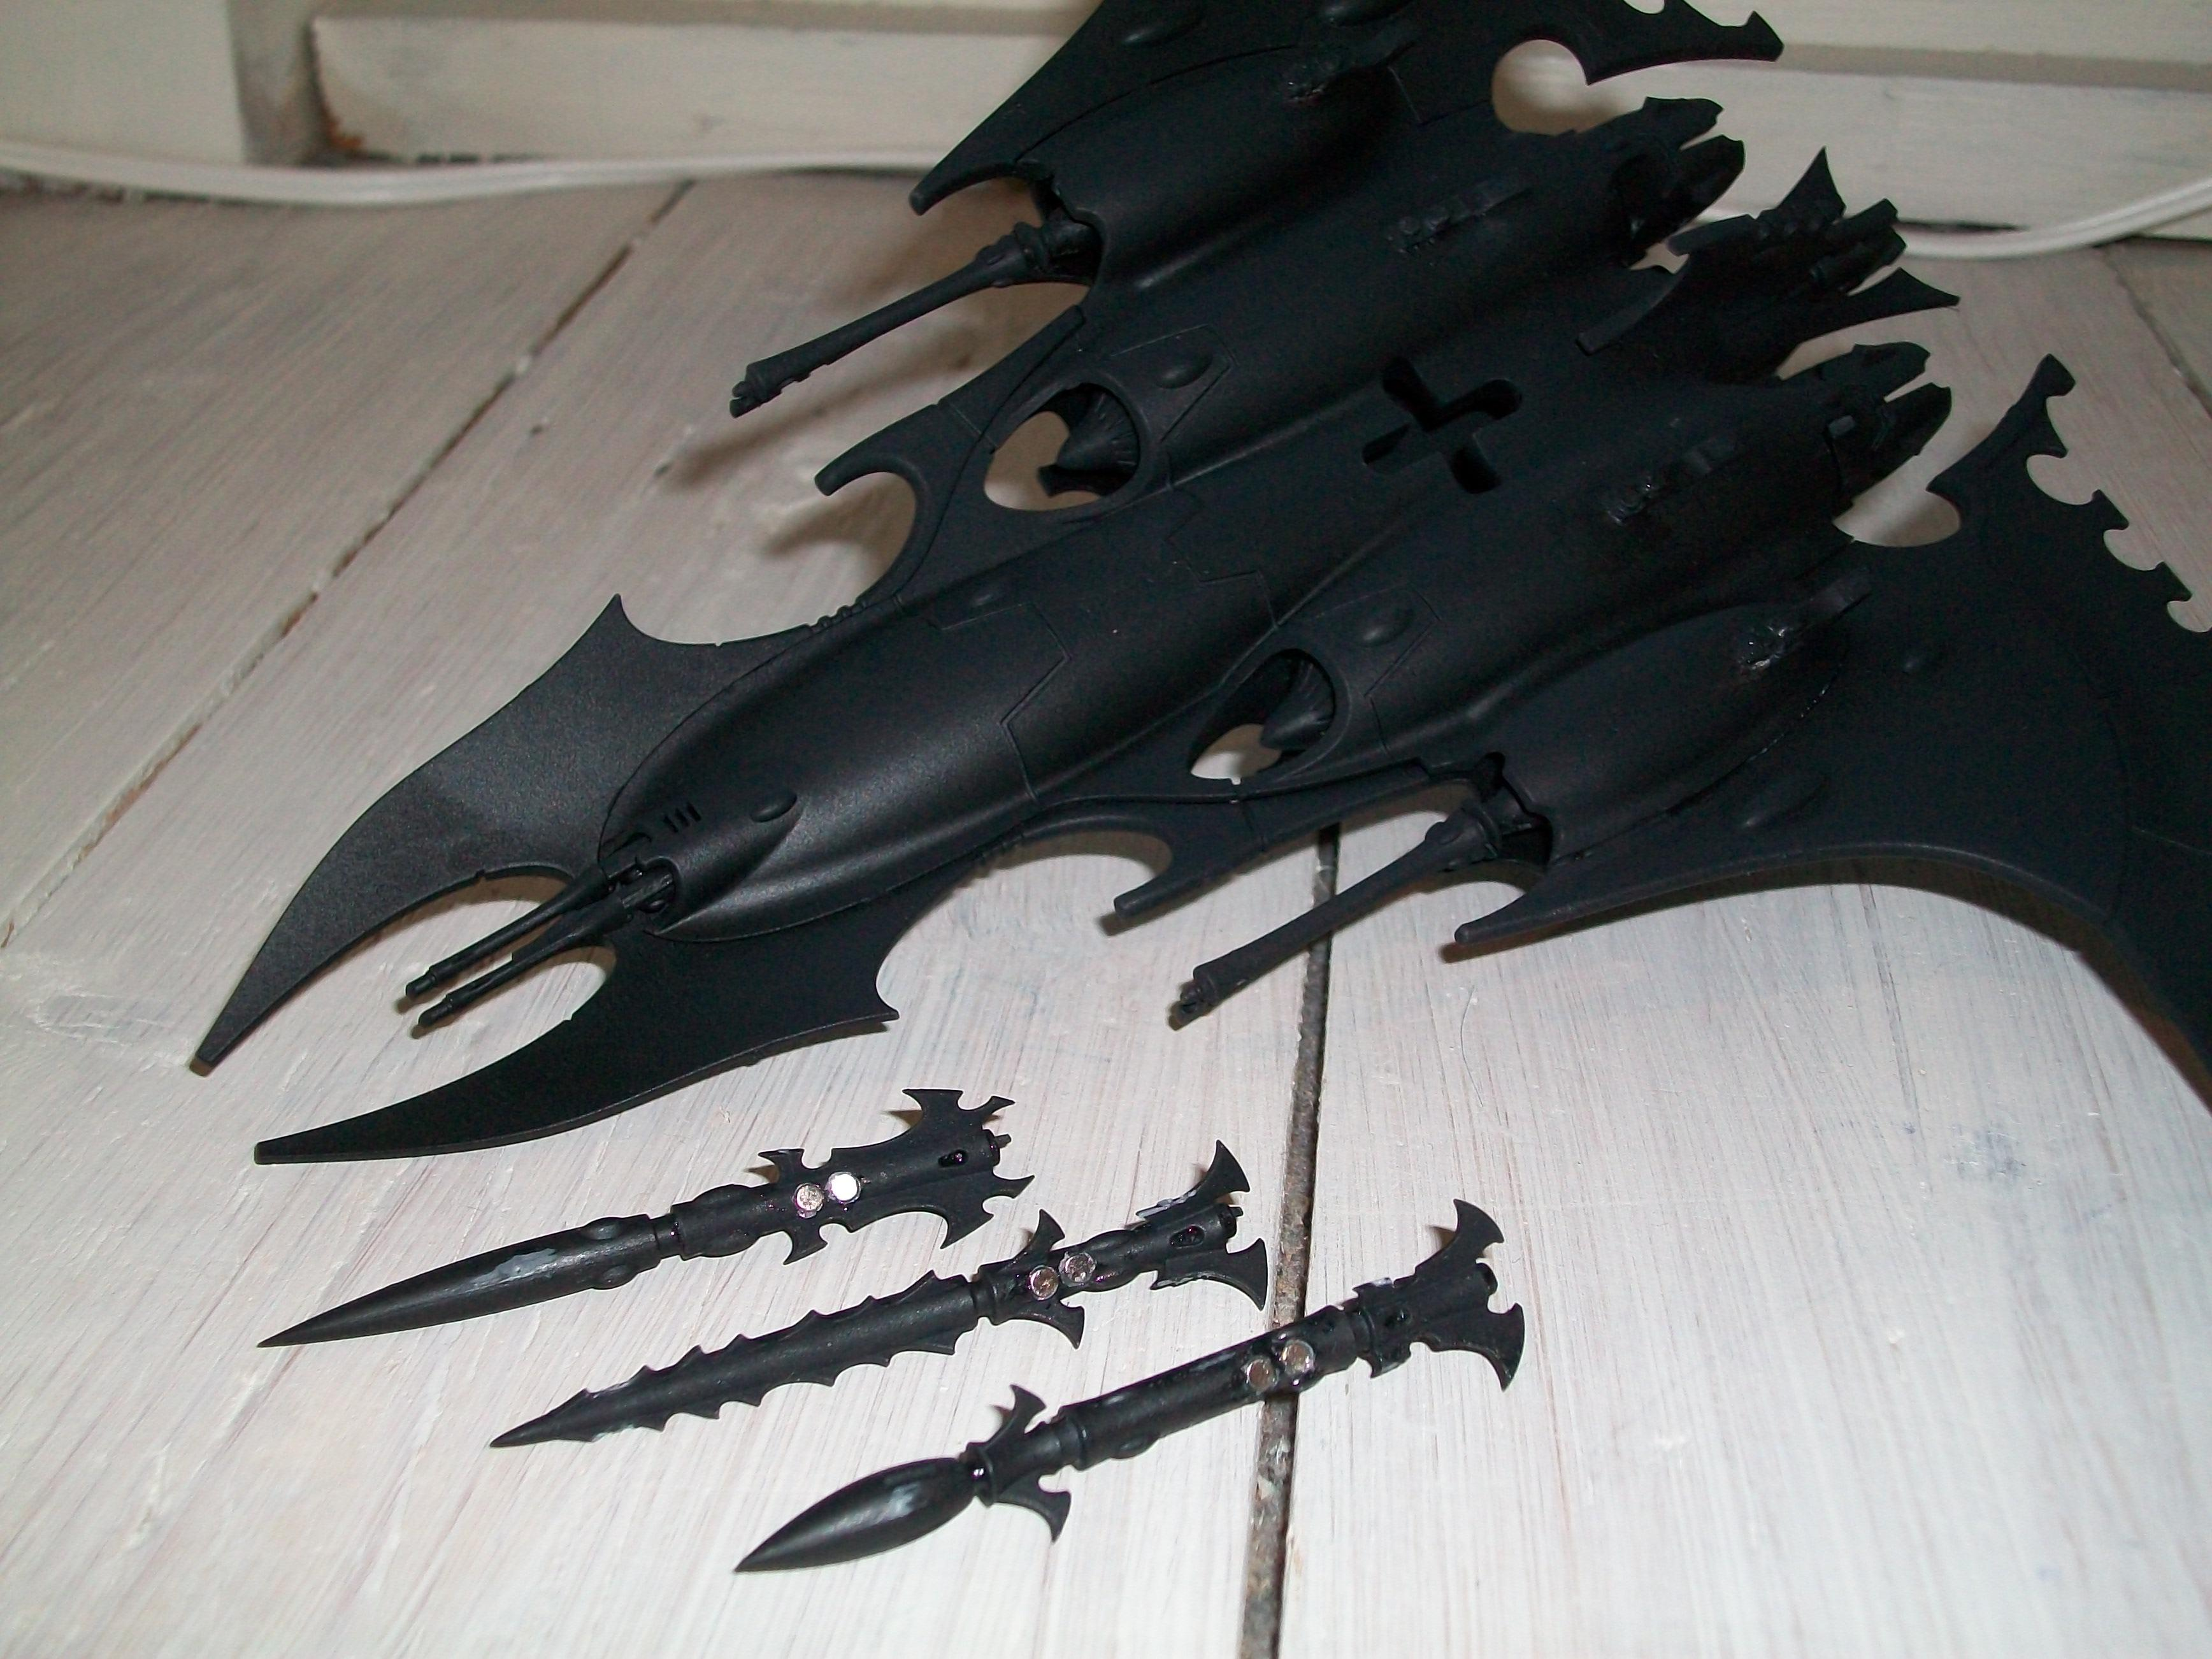 Magnet, Missiles, Razorwing Jetfighter